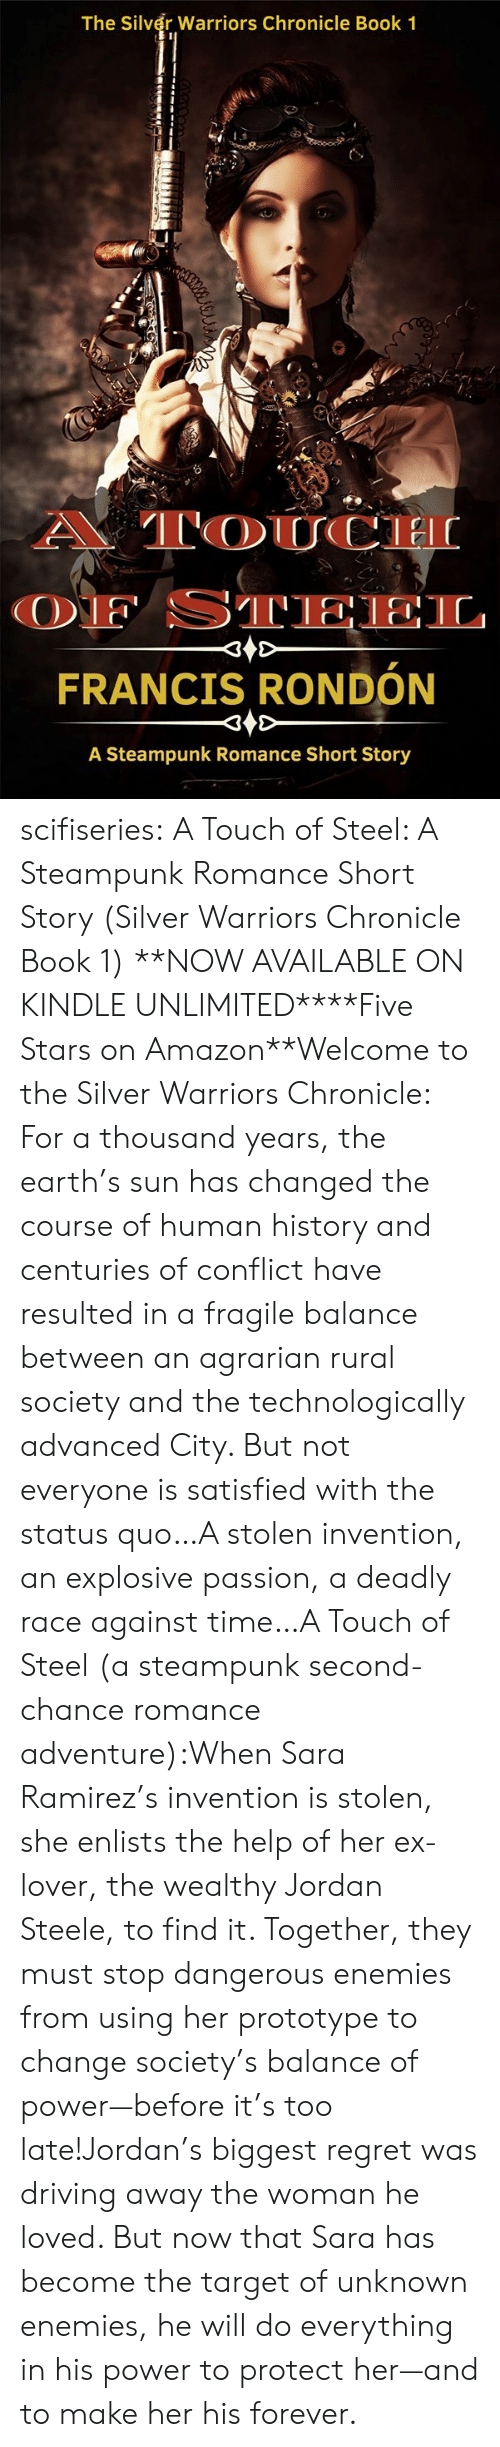 Find It: The Silver Warriors Chronicle Book 1  A TOUCH  OF STEEL  FRANCIS RONDÓN  A Steampunk Romance Short Story scifiseries:   A Touch of Steel: A Steampunk Romance Short Story (Silver Warriors Chronicle Book 1)   **NOW AVAILABLE ON KINDLE UNLIMITED****Five Stars on Amazon**Welcome to the Silver Warriors Chronicle: For a thousand years, the earth's sun has changed the course of human history and centuries of conflict have resulted in a fragile balance between an agrarian rural society and the technologically advanced City. But not everyone is satisfied with the status quo…A stolen invention, an explosive passion, a deadly race against time…A Touch of Steel (a steampunk second-chance romance adventure):When Sara Ramirez's invention is stolen, she enlists the help of her ex-lover, the wealthy Jordan Steele, to find it. Together, they must stop dangerous enemies from using her prototype to change society's balance of power—before it's too late!Jordan's biggest regret was driving away the woman he loved. But now that Sara has become the target of unknown enemies, he will do everything in his power to protect her—and to make her his forever.